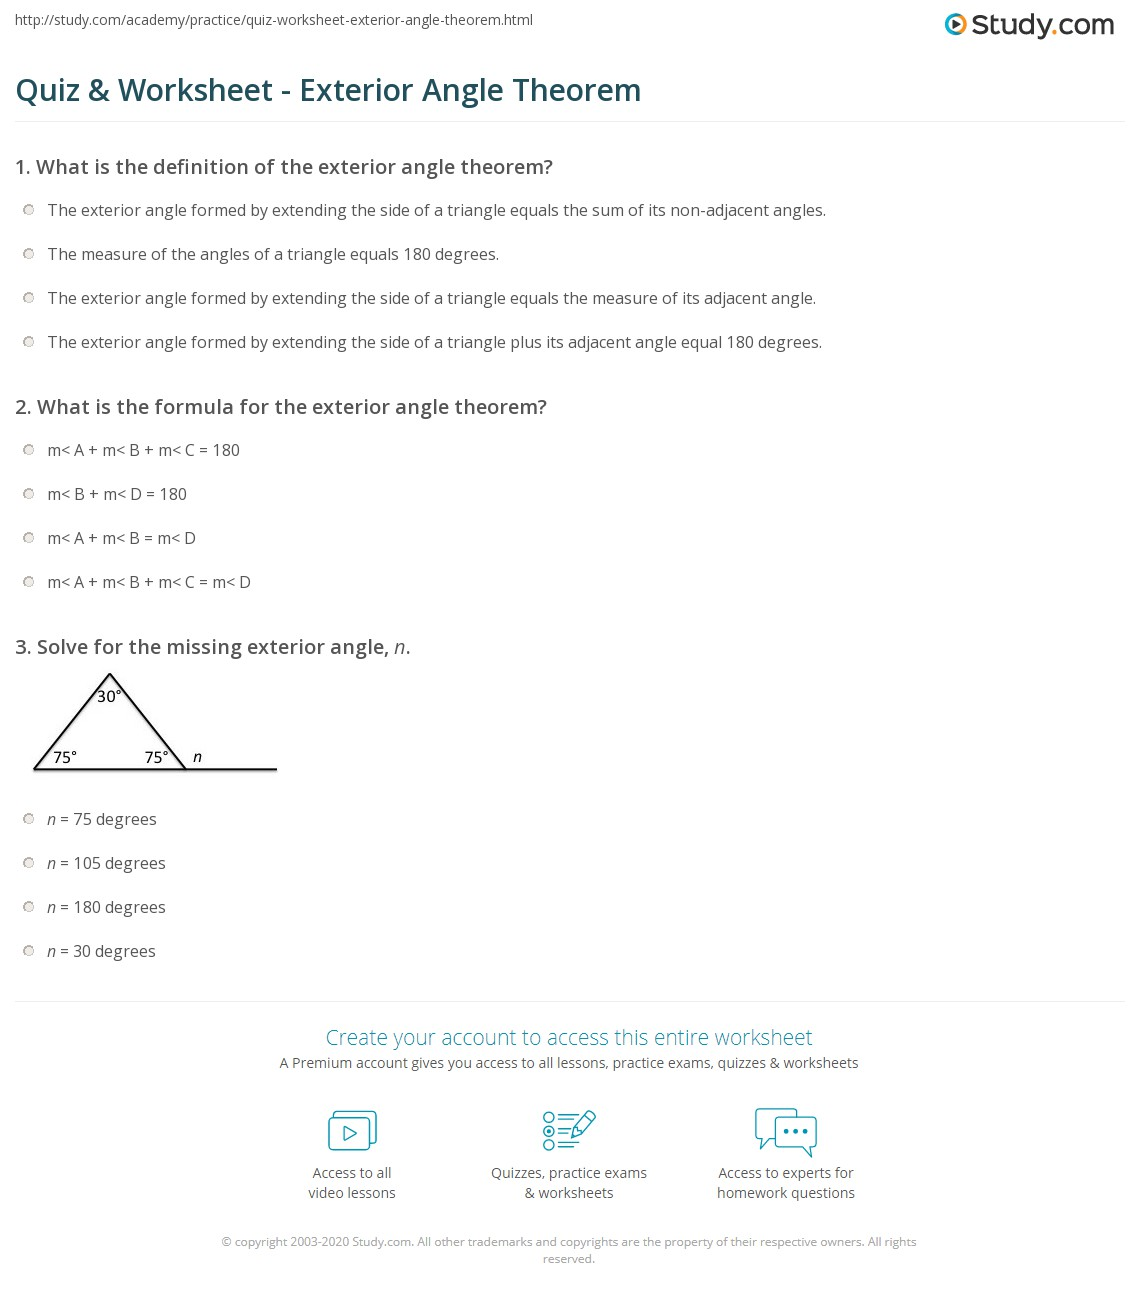 Quiz Worksheet Exterior Angle Theorem – Exterior Angle Theorem Worksheet